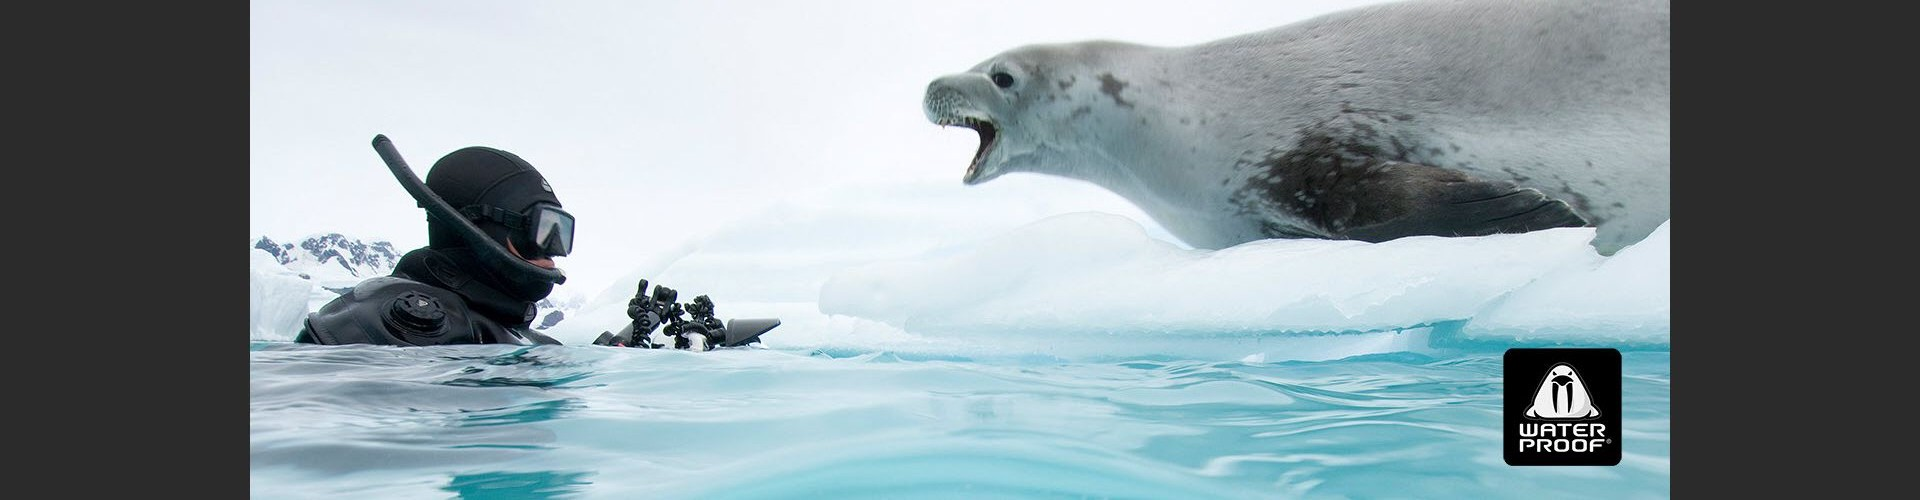 Waterproof_Leopard_Seal